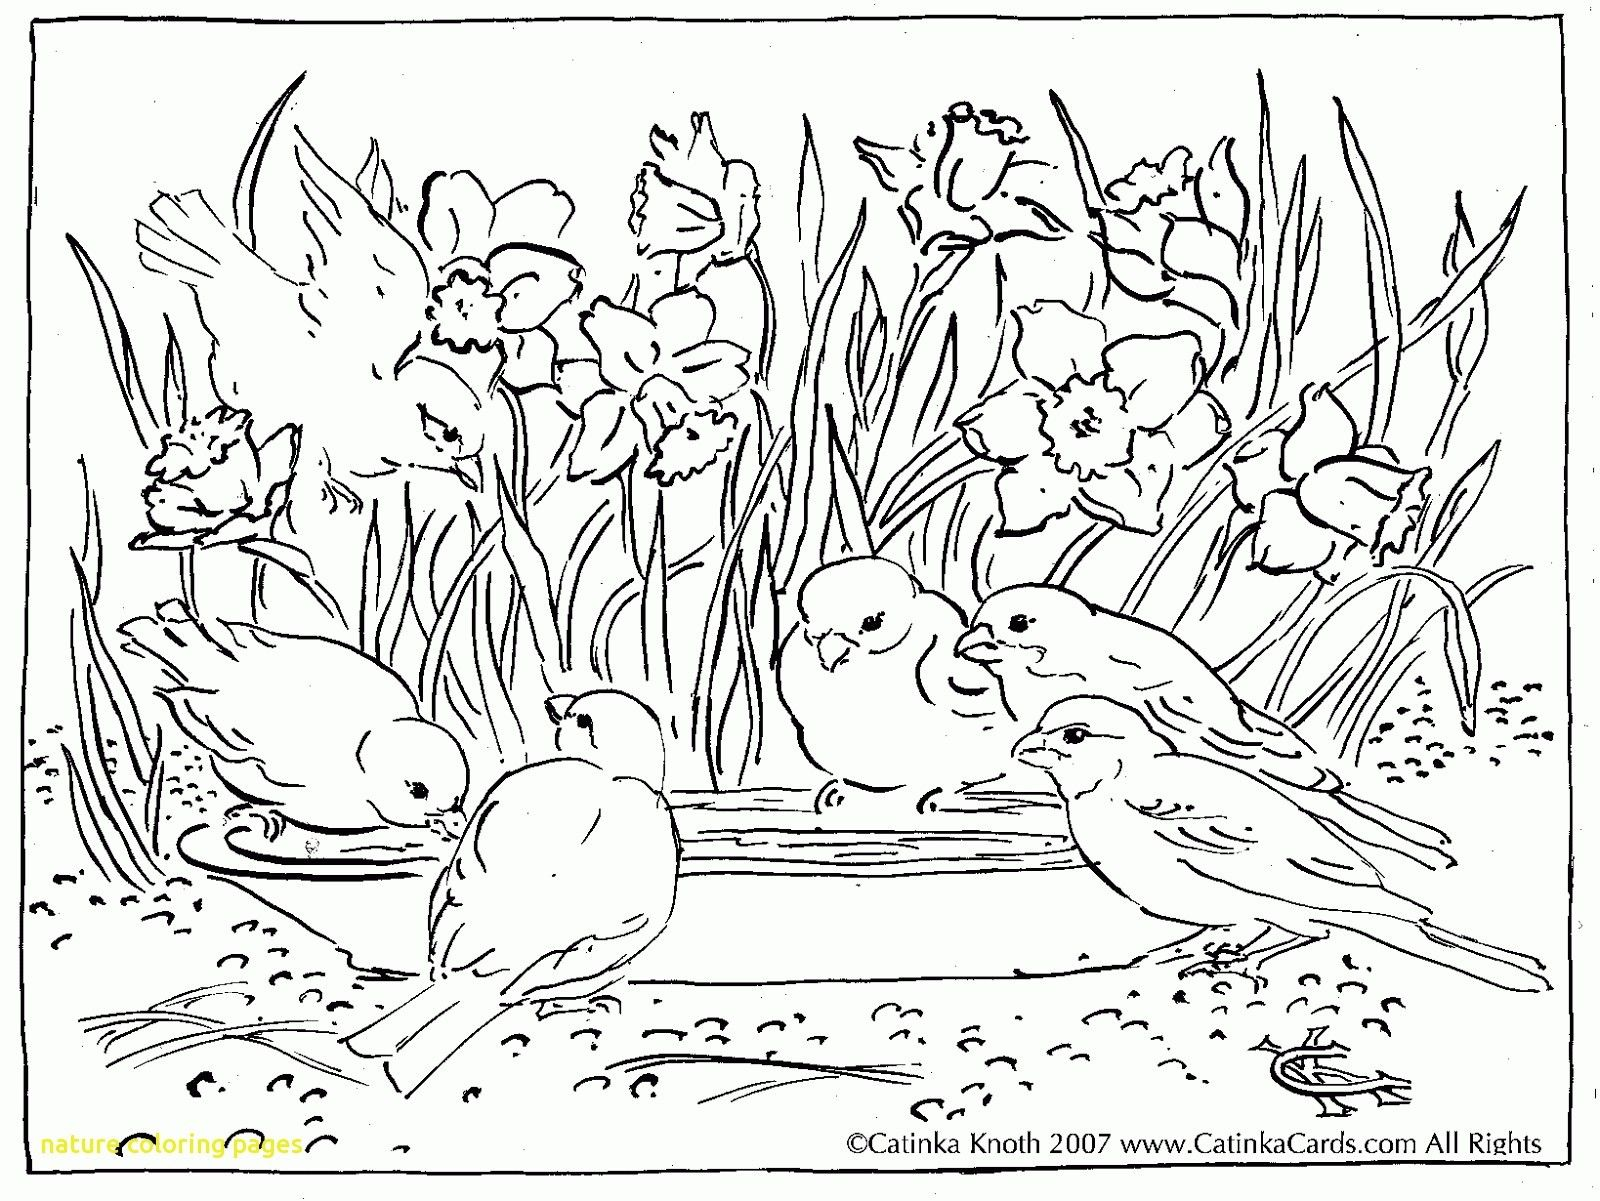 Nature Coloring Pages Refrence Nature Coloring Pages With Drawn